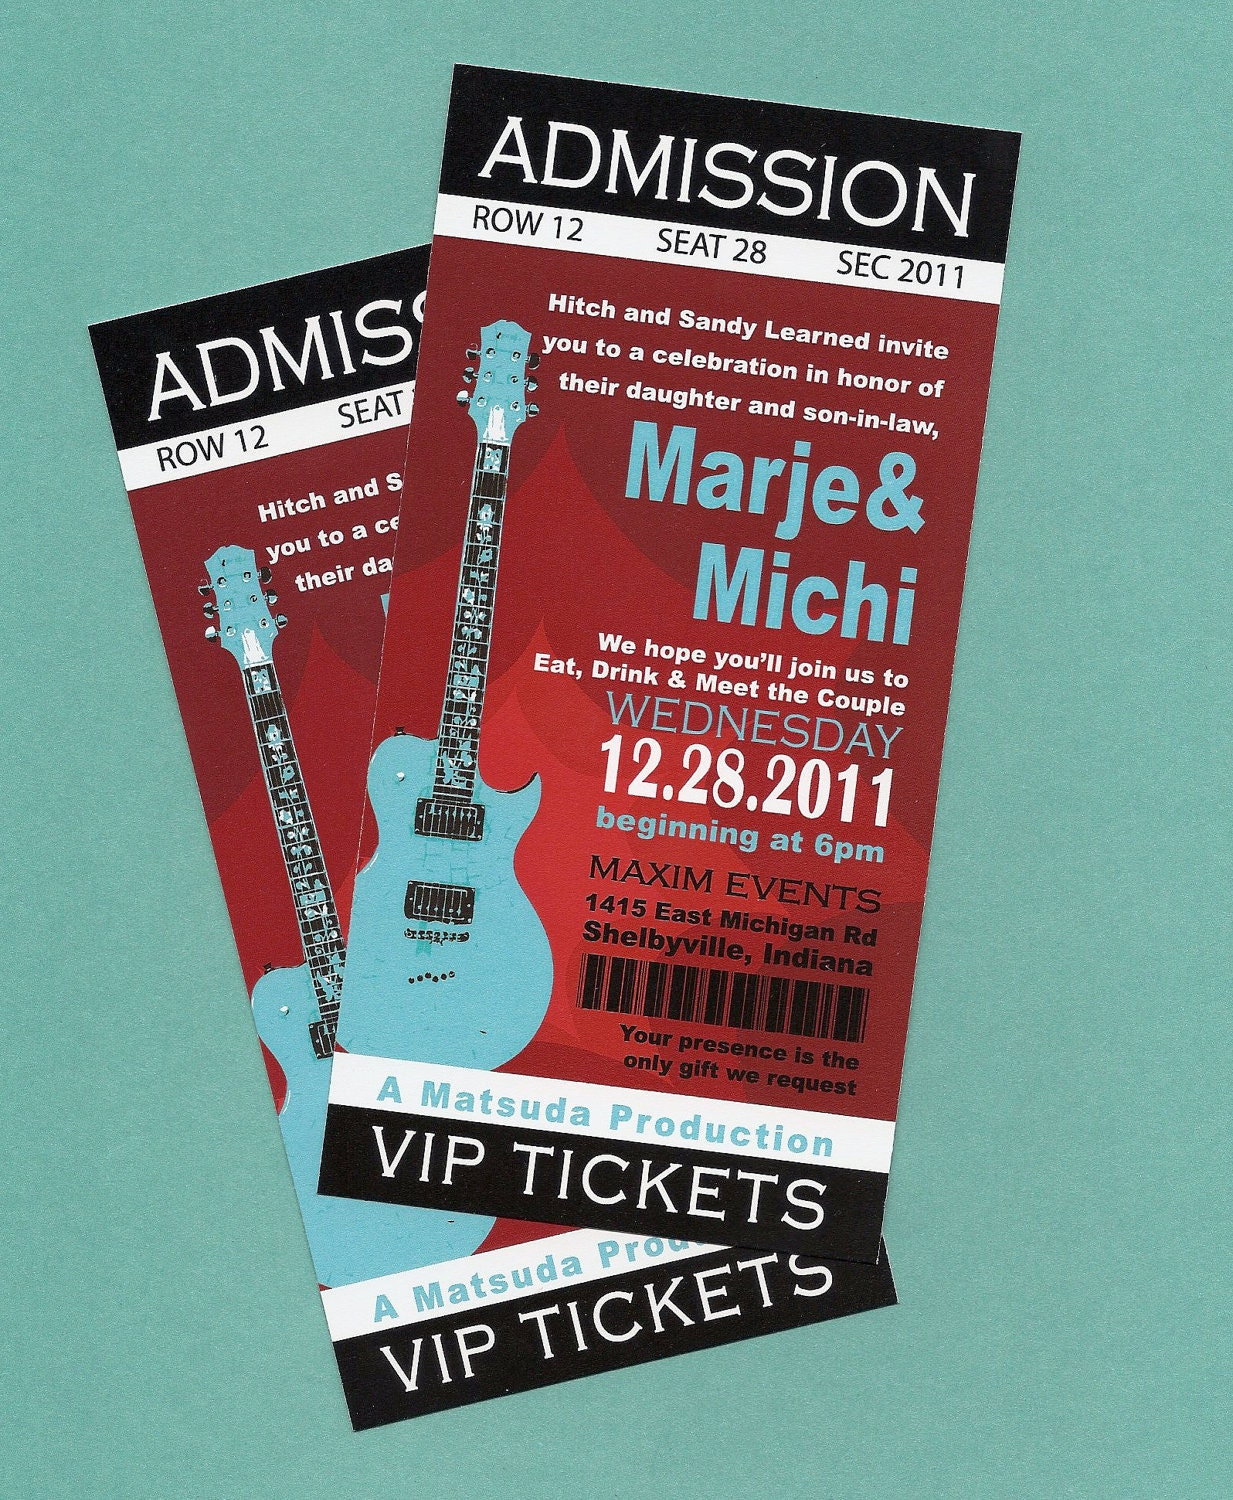 Concert Ticket Layout 1000 ideas about ticket template on – Concert Ticket Layout